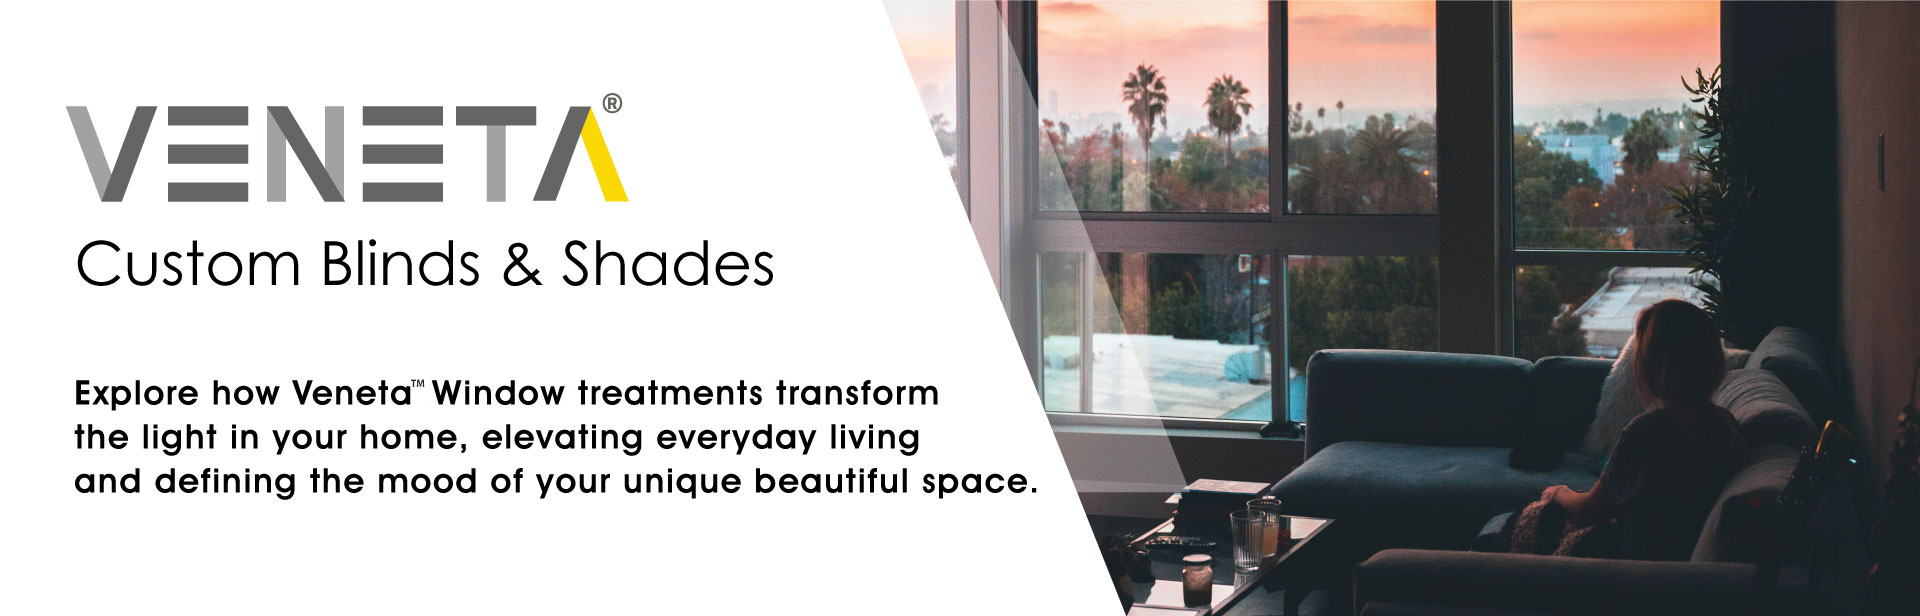 Explore how Veneta Window Treatments transform the light in your home, elevating everyday living and defining the mood of your unique beautiful space.